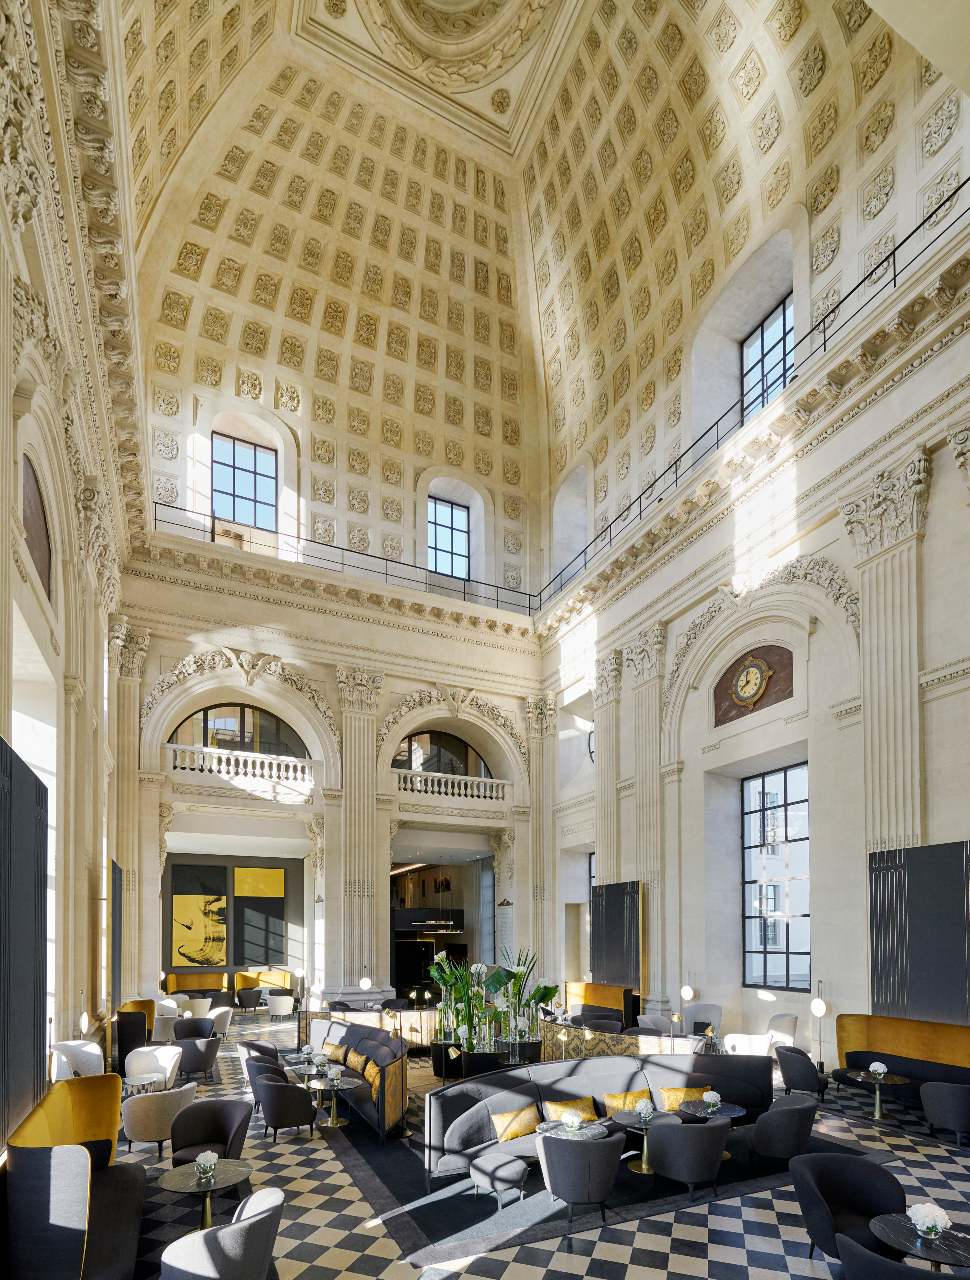 intercontinental-lyon-hotel-dieu-the-dome-bar-eric-cuvillier-ute-junker